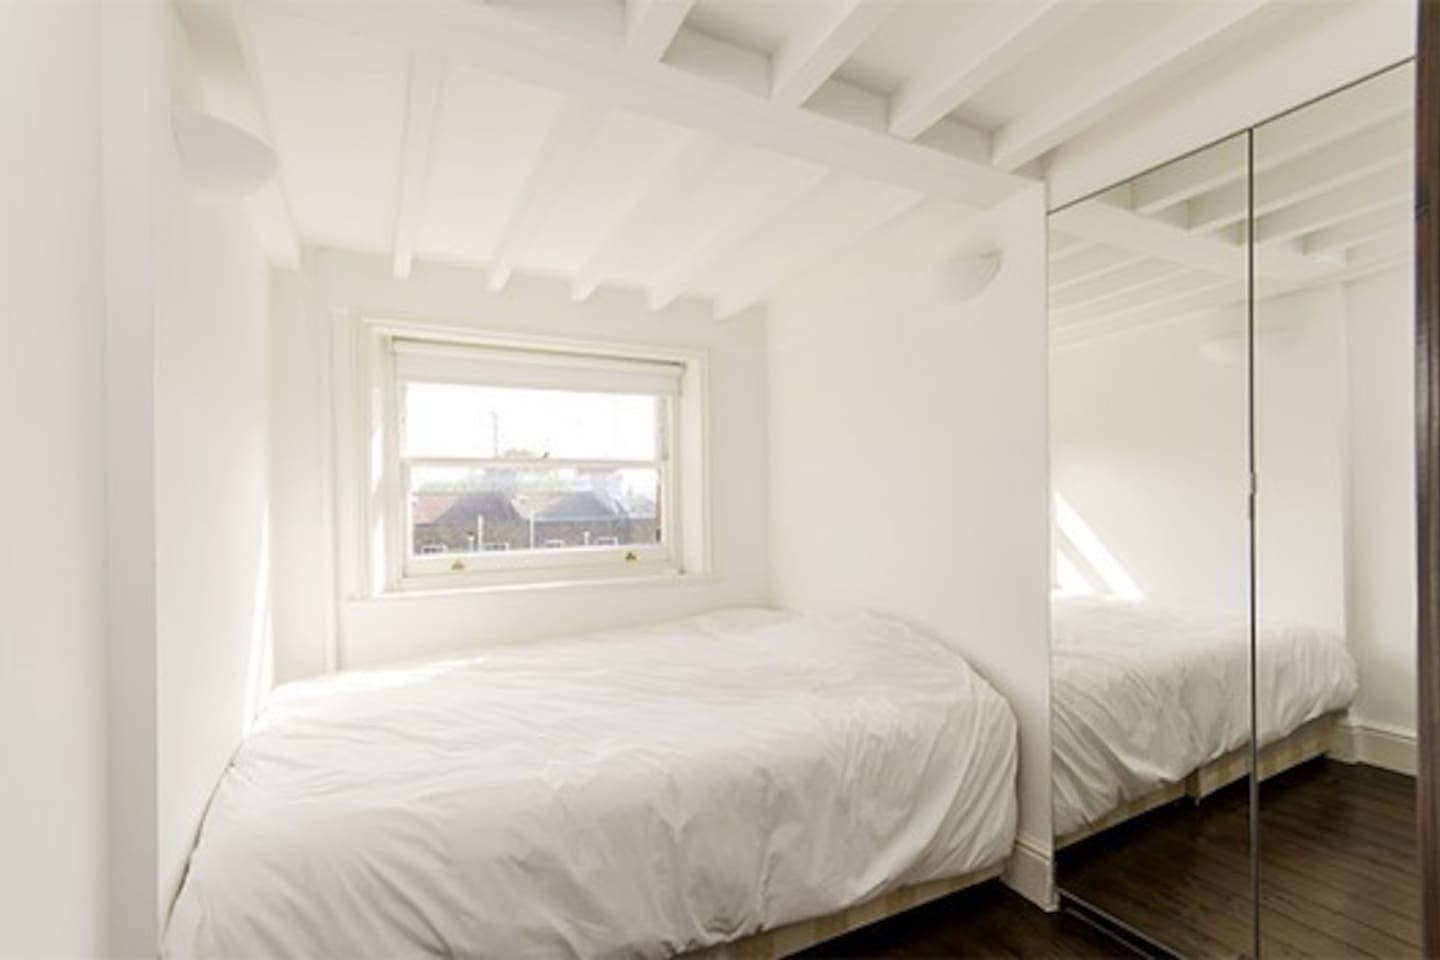 Stunning flat in the center of London, with a beautiful view on the roof of London. the room is really calm, and you will feel at home